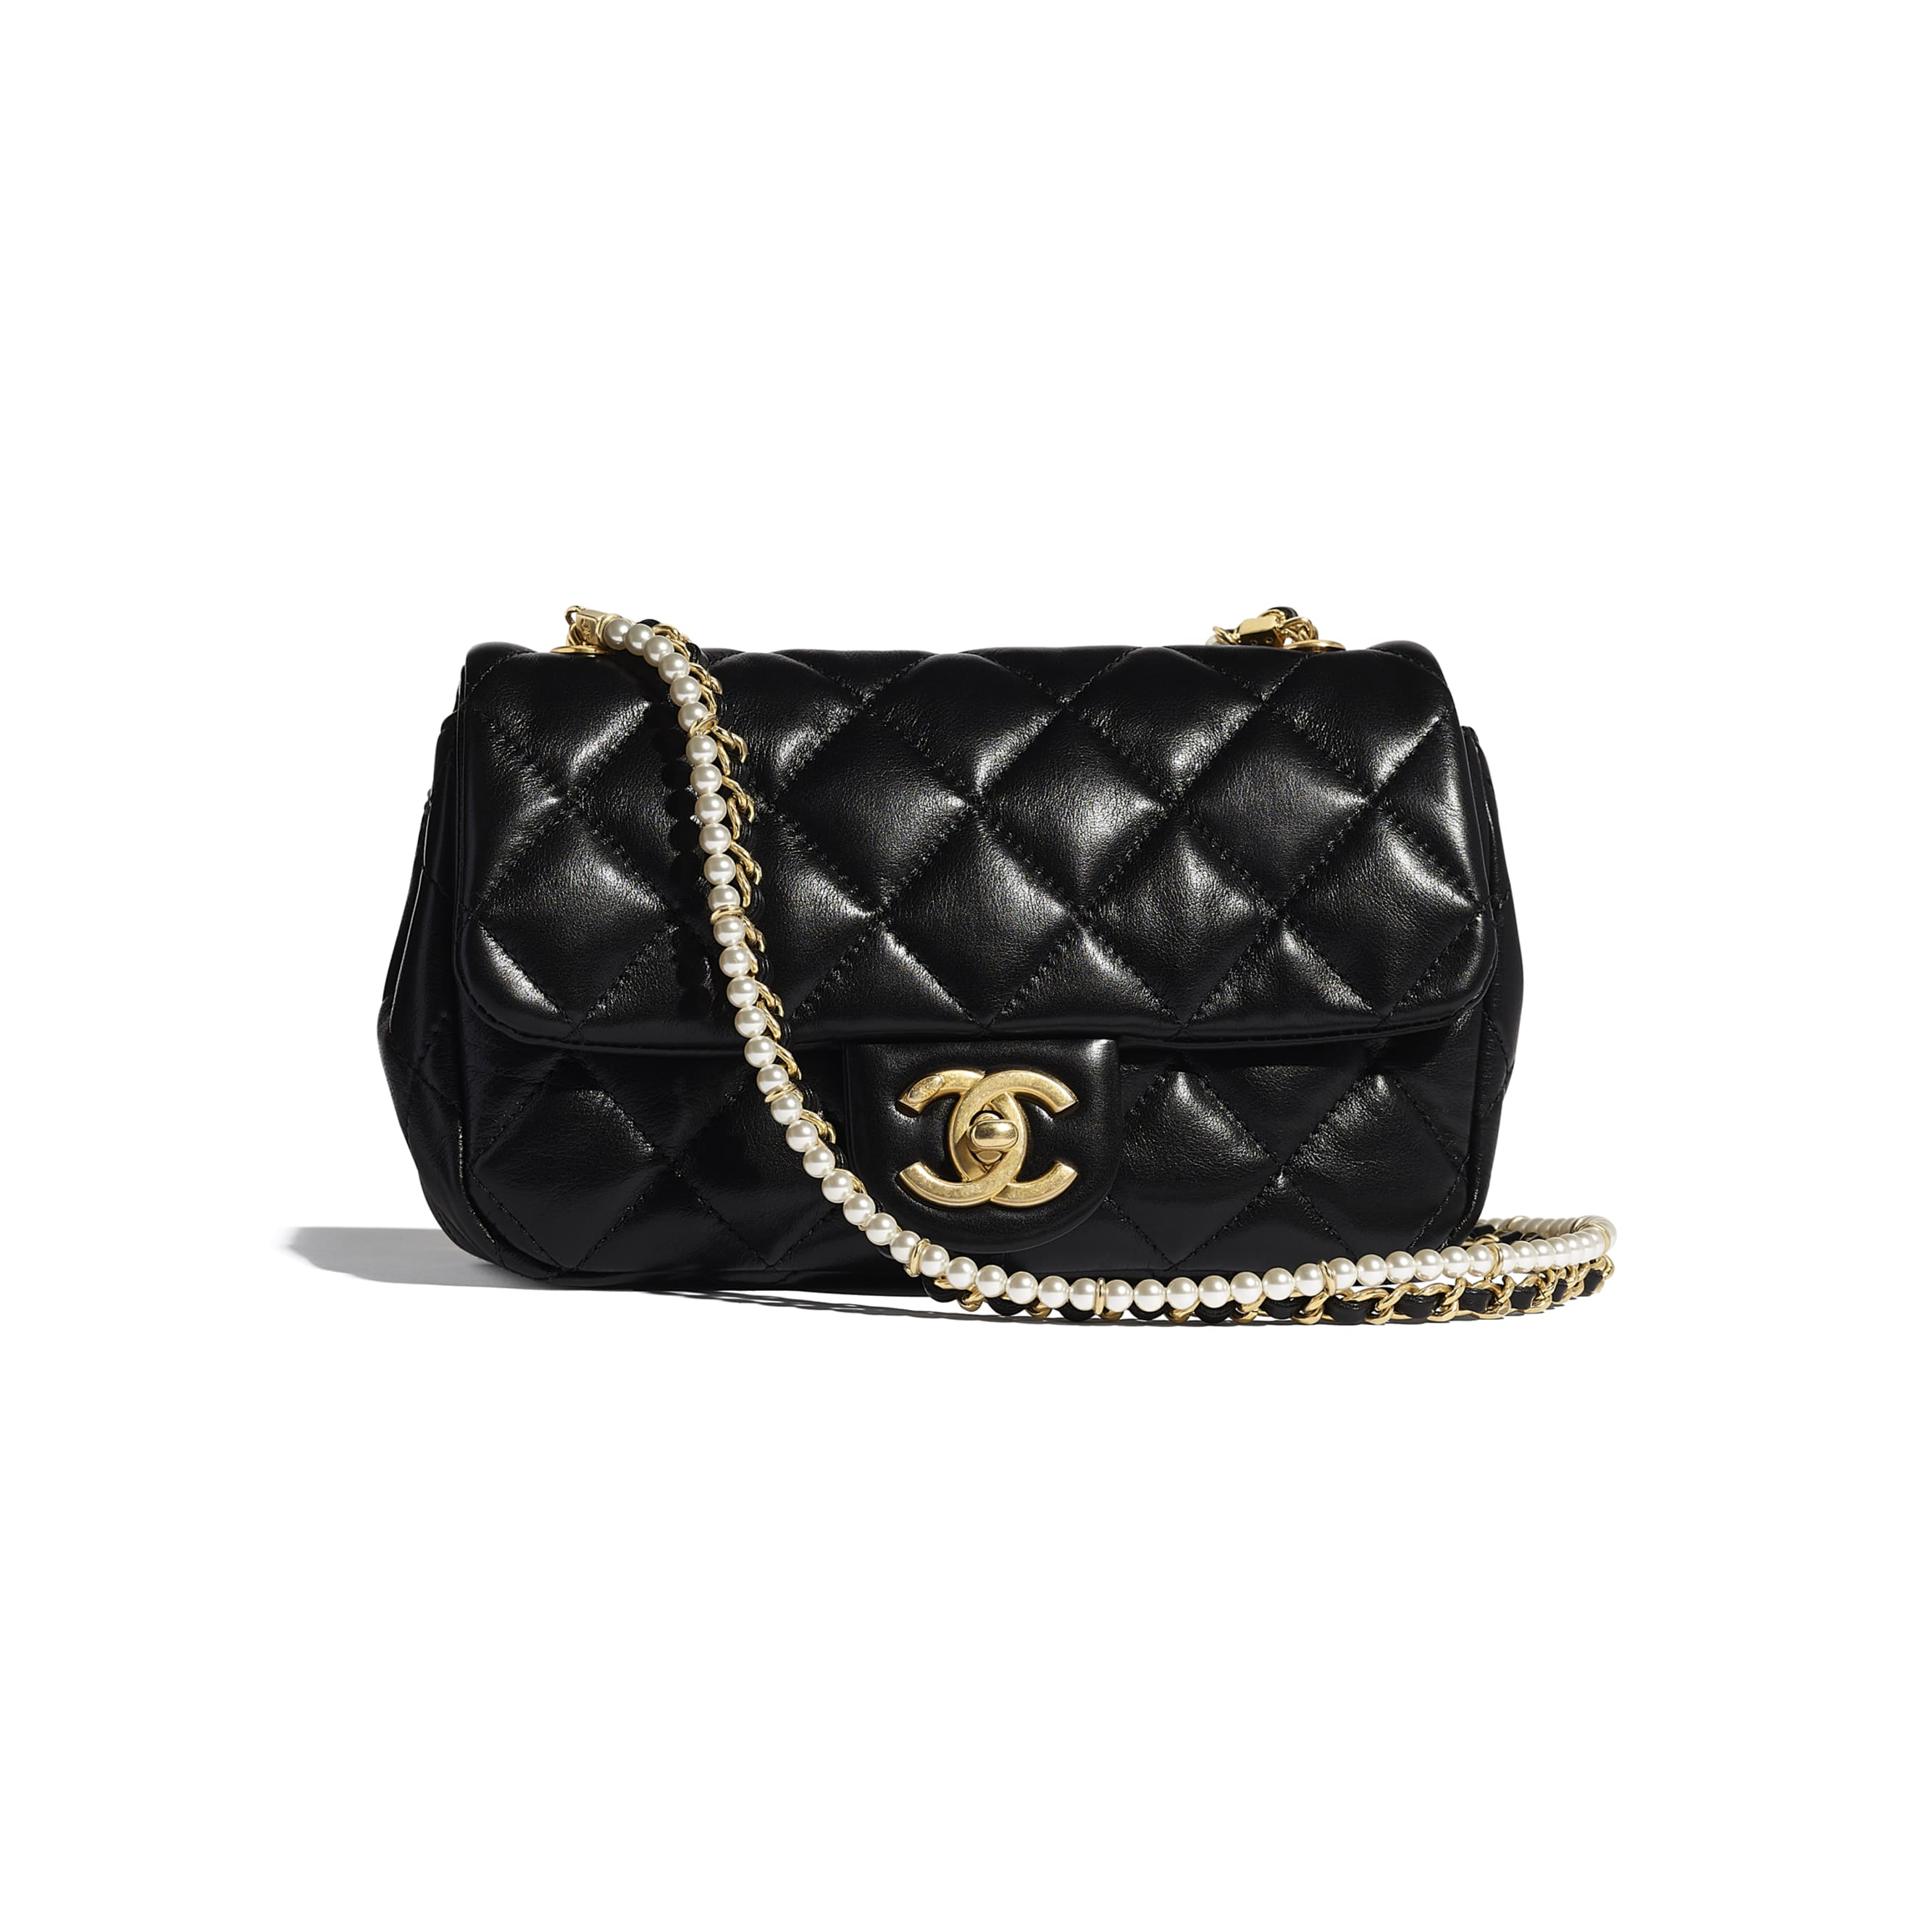 Flap Bag - Black - Calfskin, Crystal Pearls & Gold-Tone Metal - CHANEL - Default view - see standard sized version